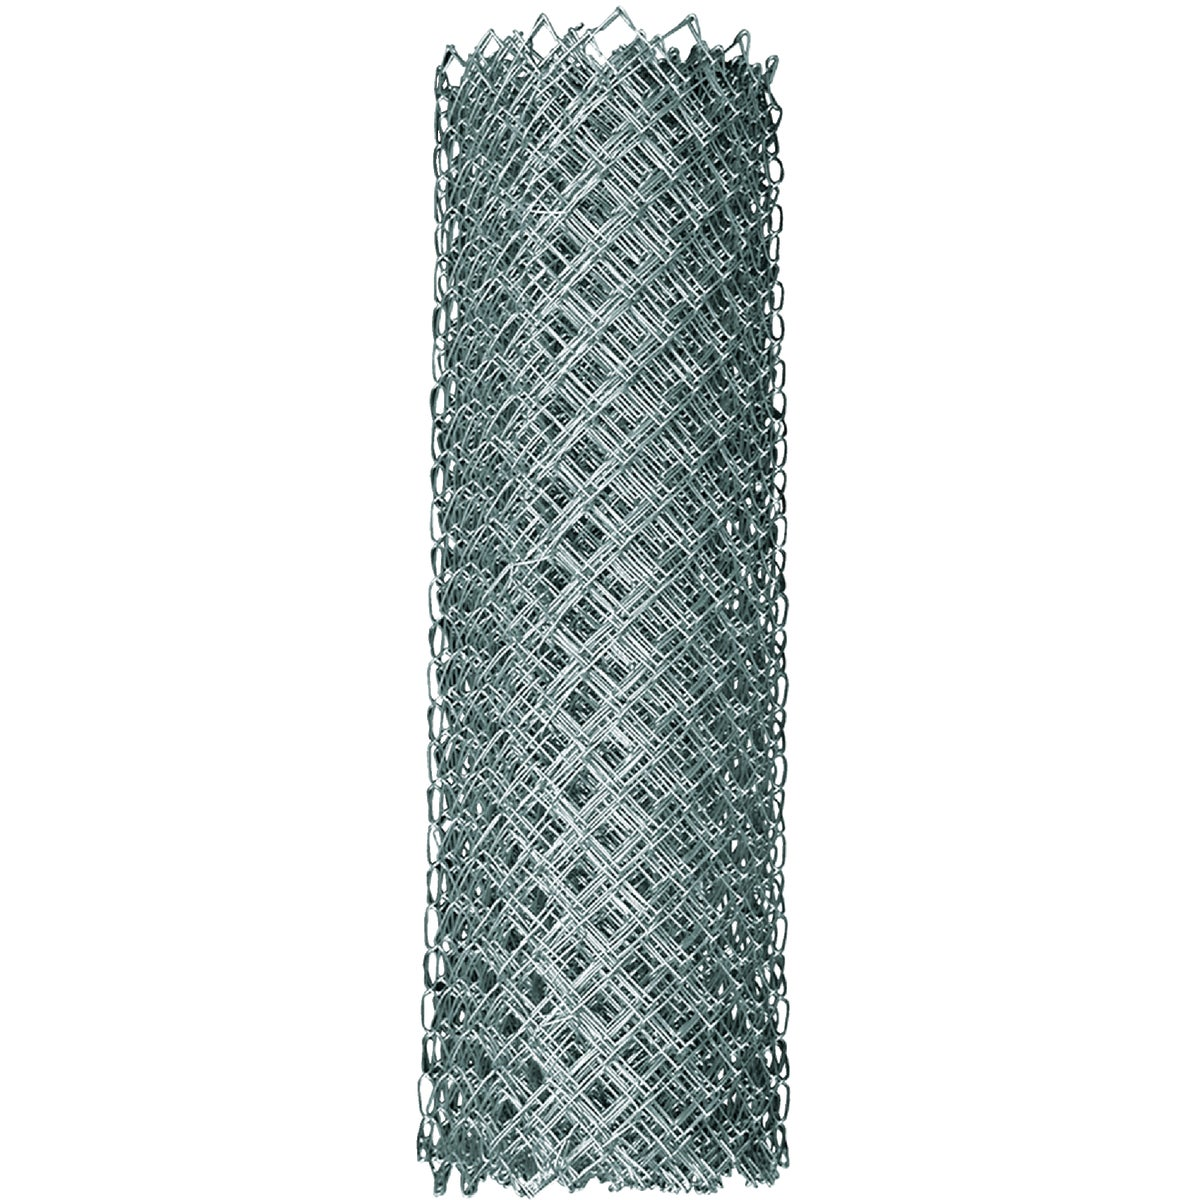 12-1/2GA 5X50'CHAIN LINK - 308755A by Midwest Air Tech